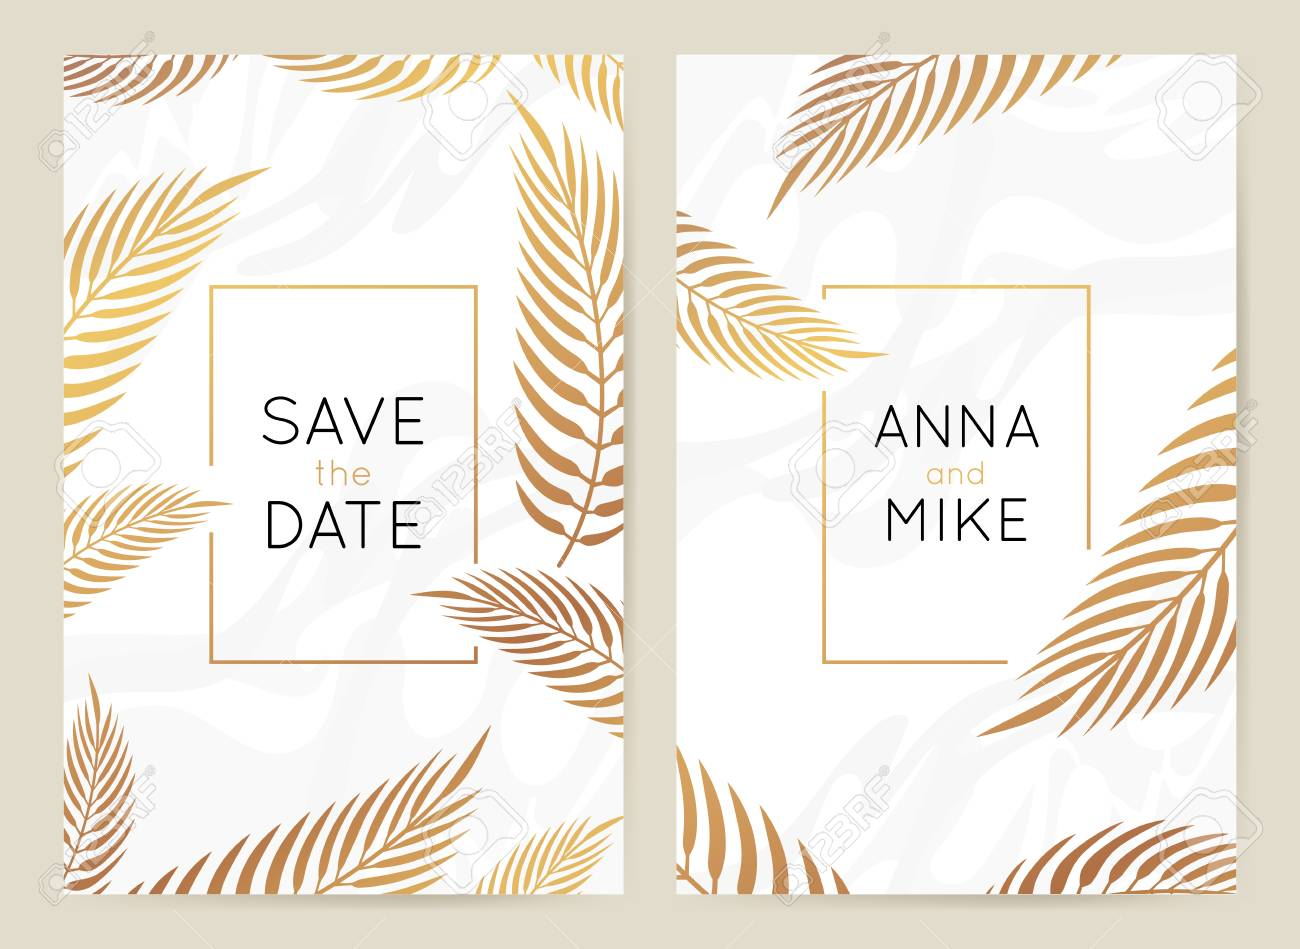 Vector design template in simple modern style with copy space for text - wedding invitation background and frame, luxury stationery and greeting card design with palm leaves and golden border - 117310080